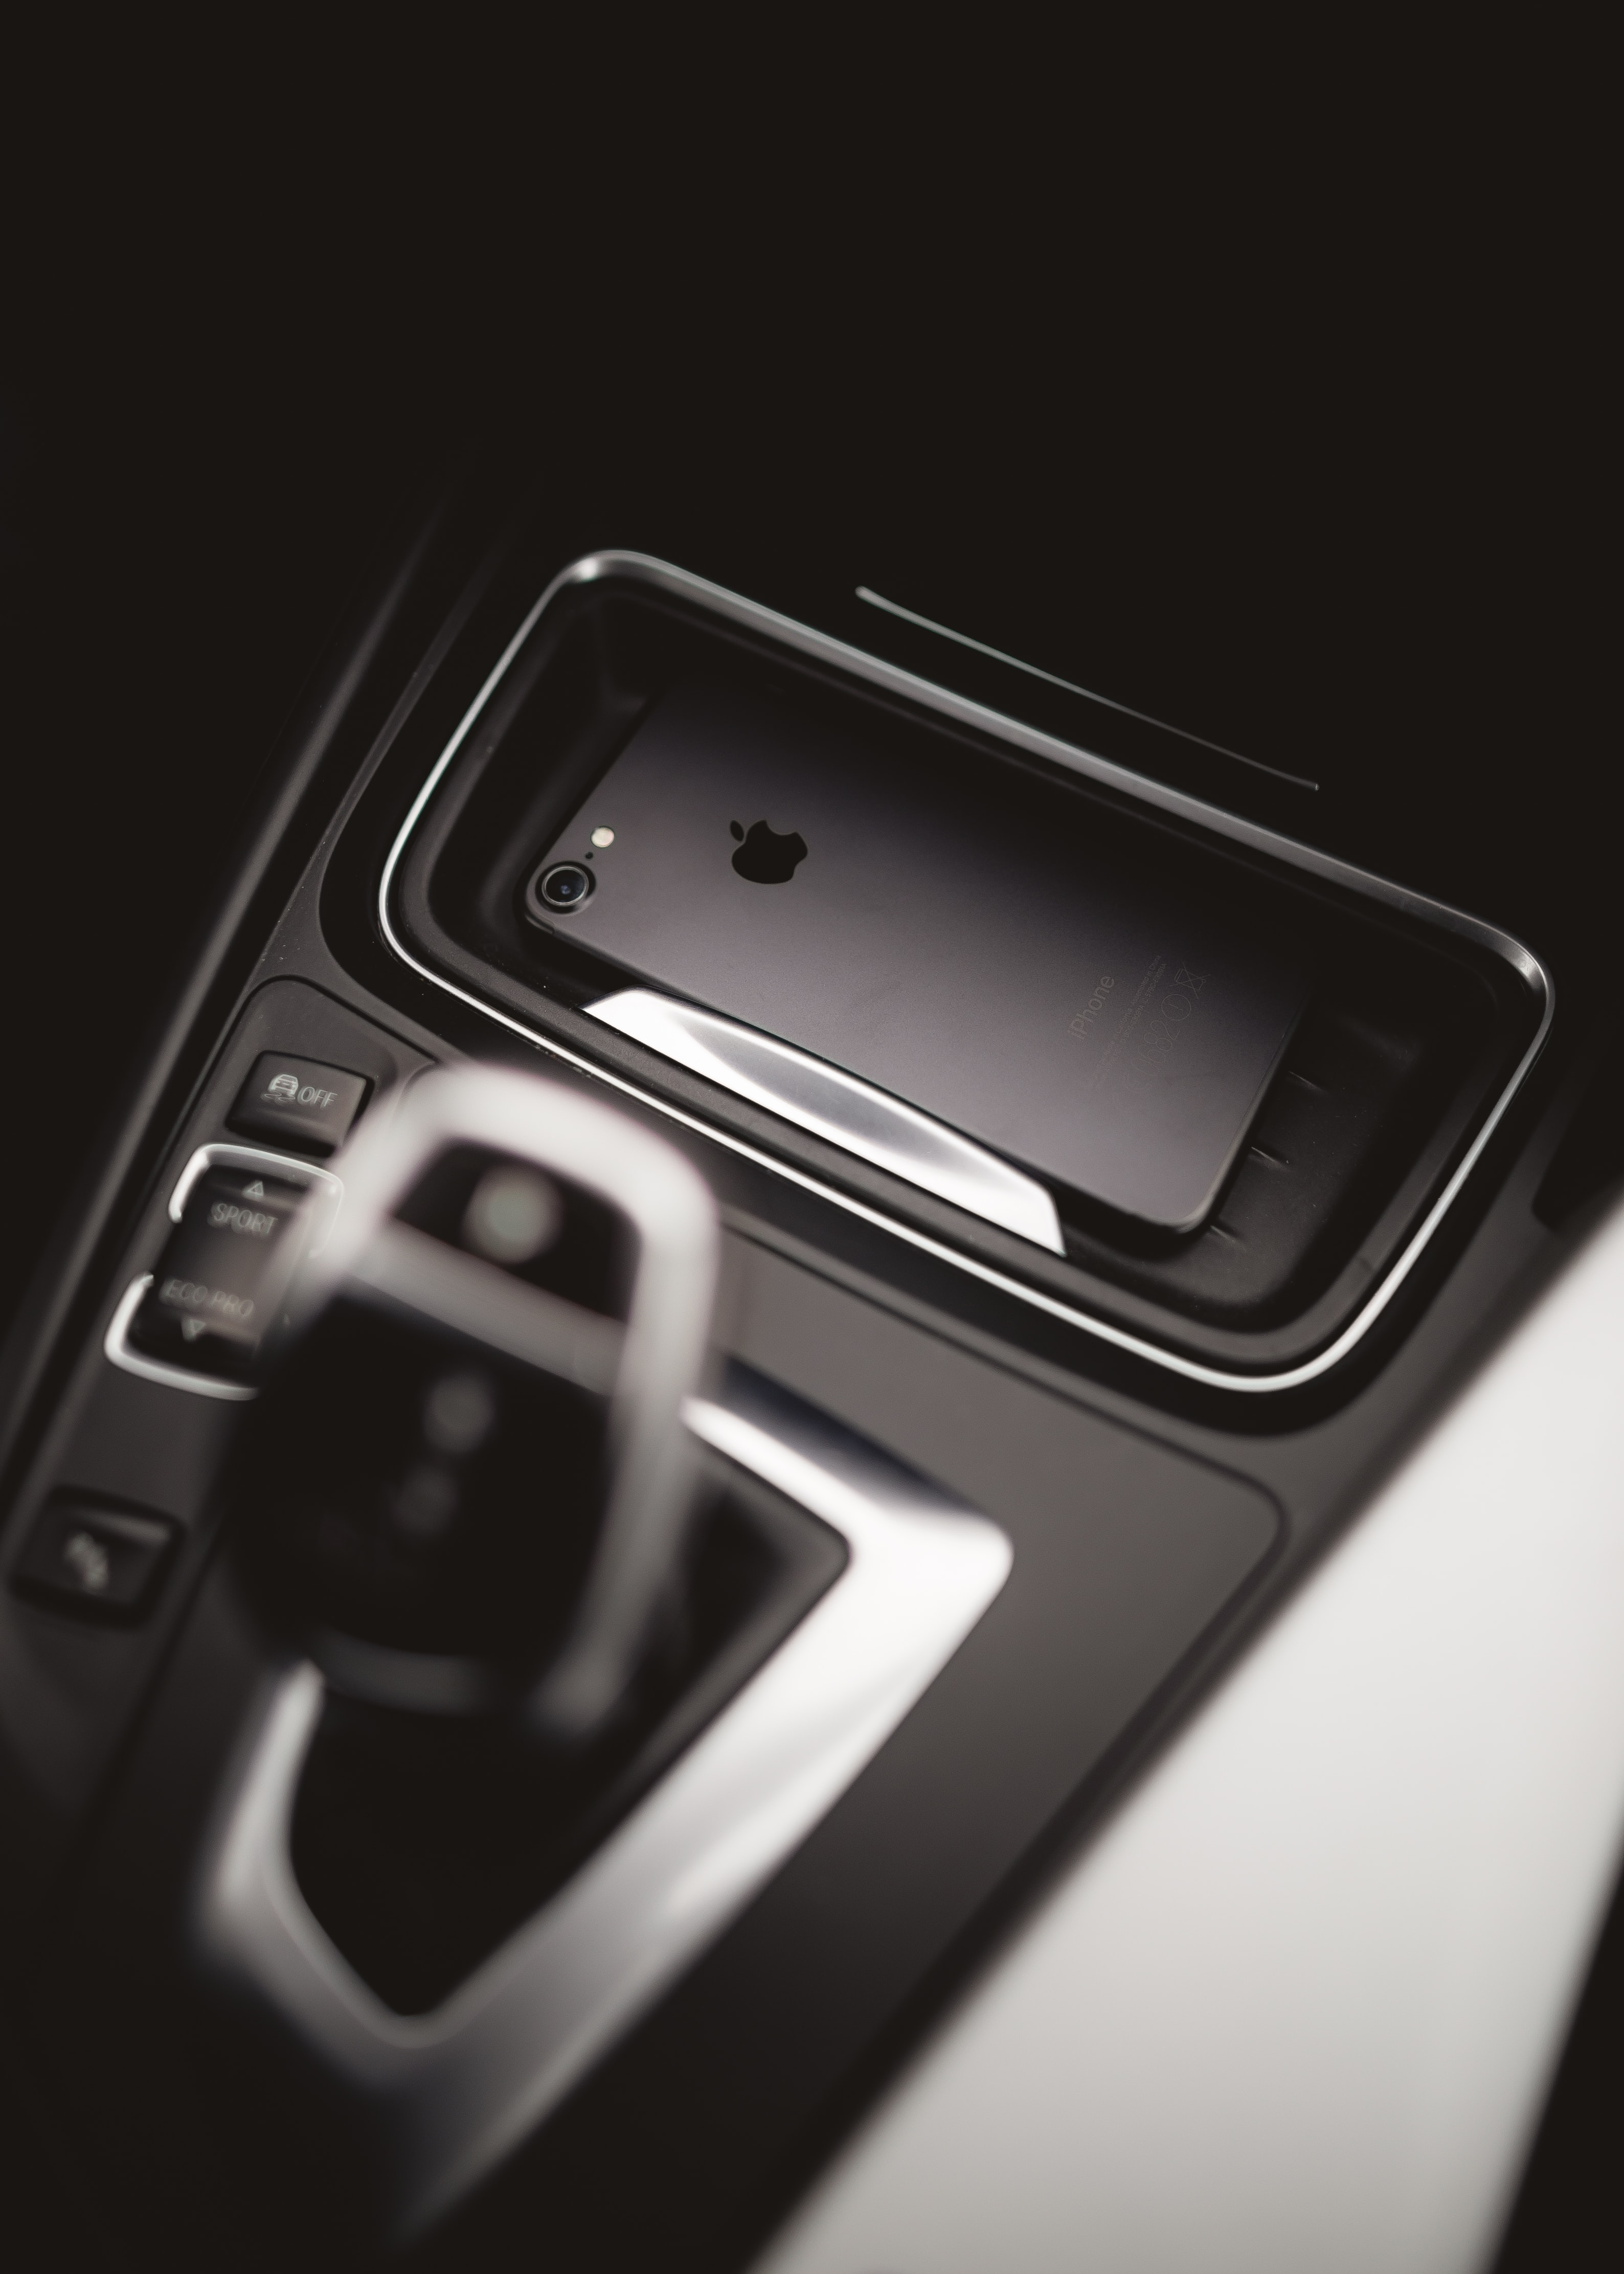 space gray iPhone 7 beside gear shift lever